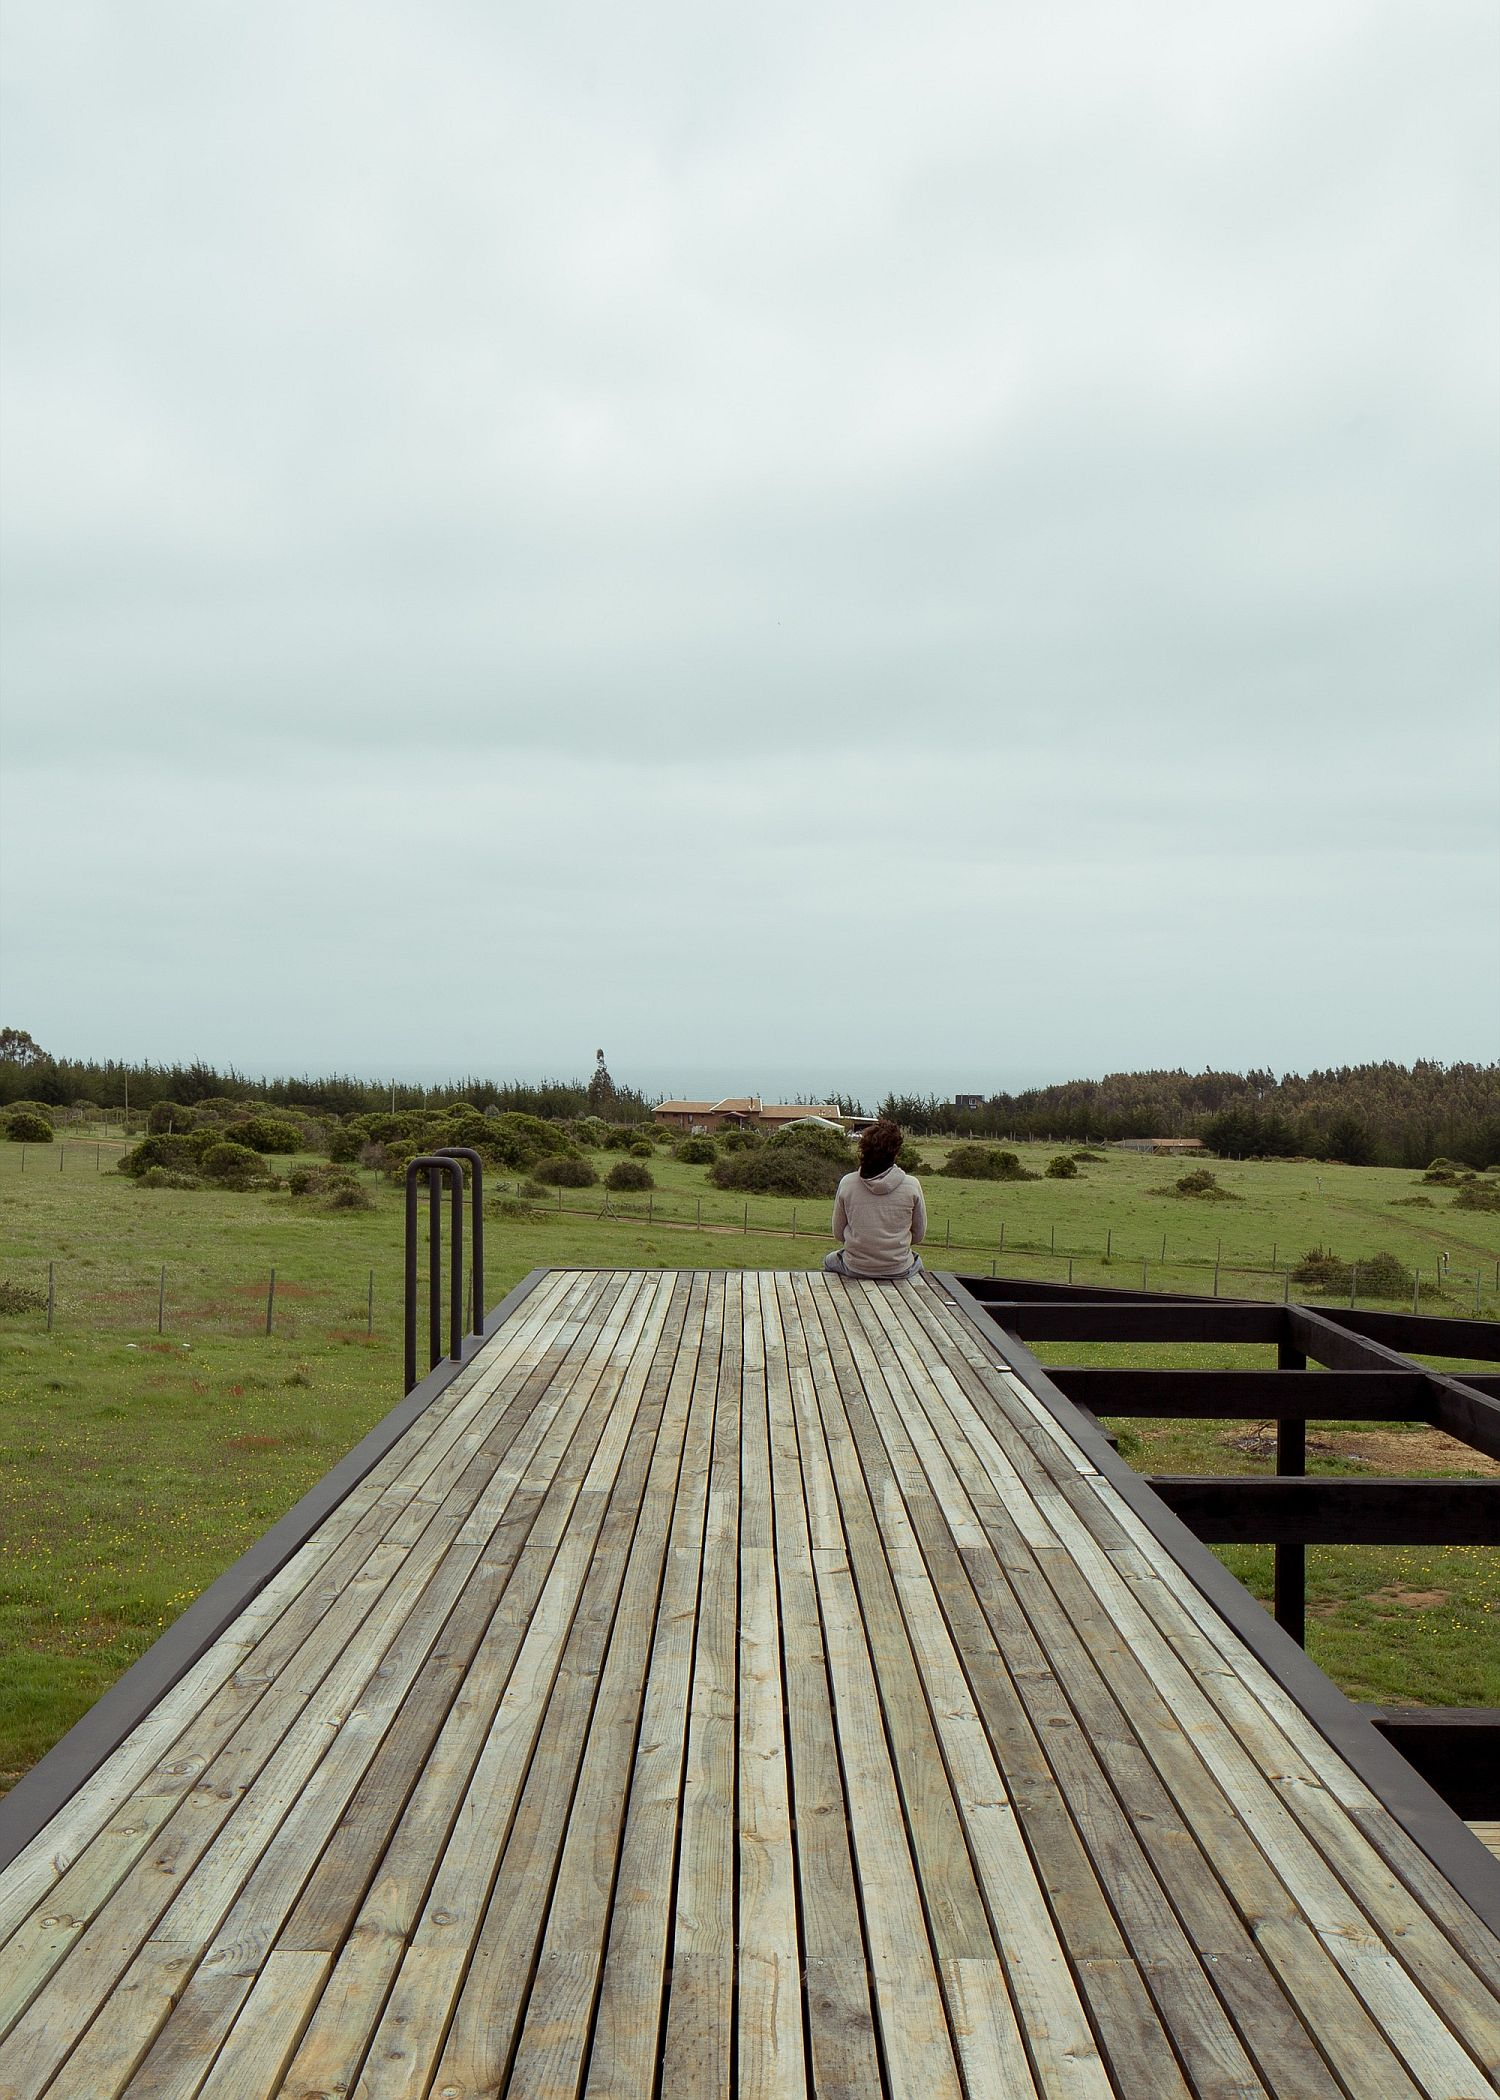 Wooden-deck-with-a-view-of-the-distant-ocean